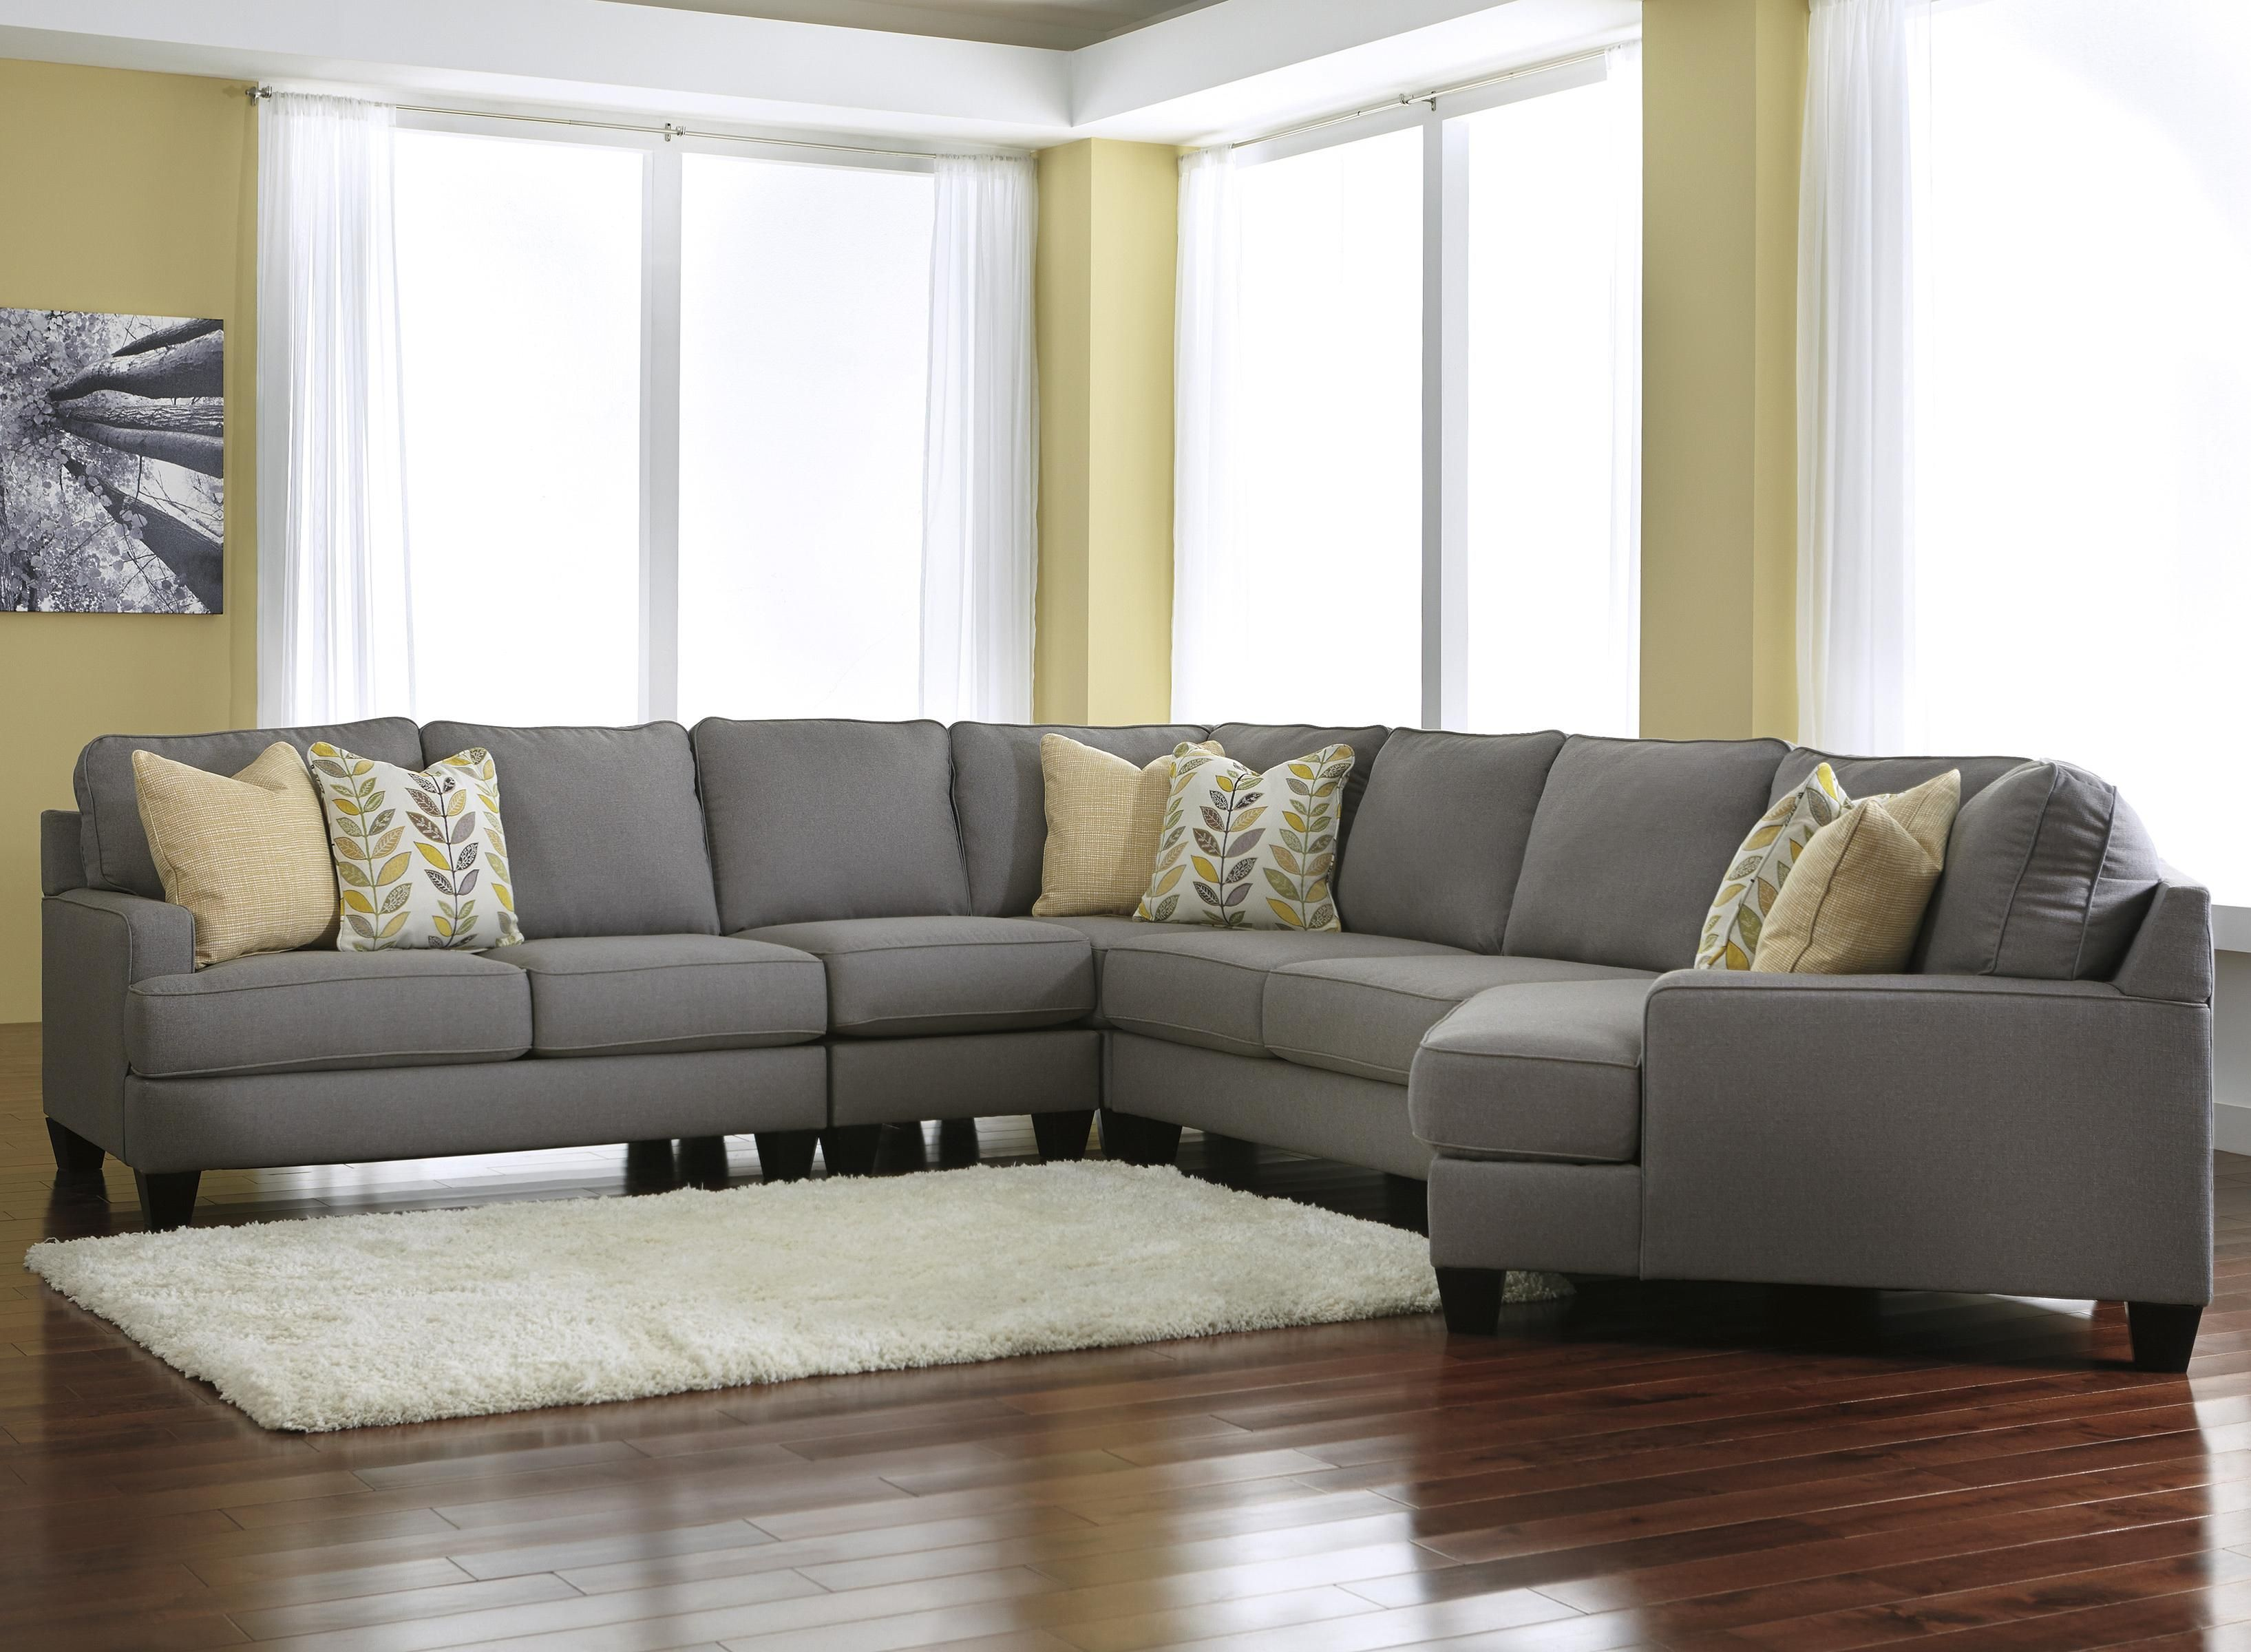 Living Room Designs With Sectionals Adorable Chamberly  Alloy Modern 5Piece Sectional Sofa With Right Cuddler Inspiration